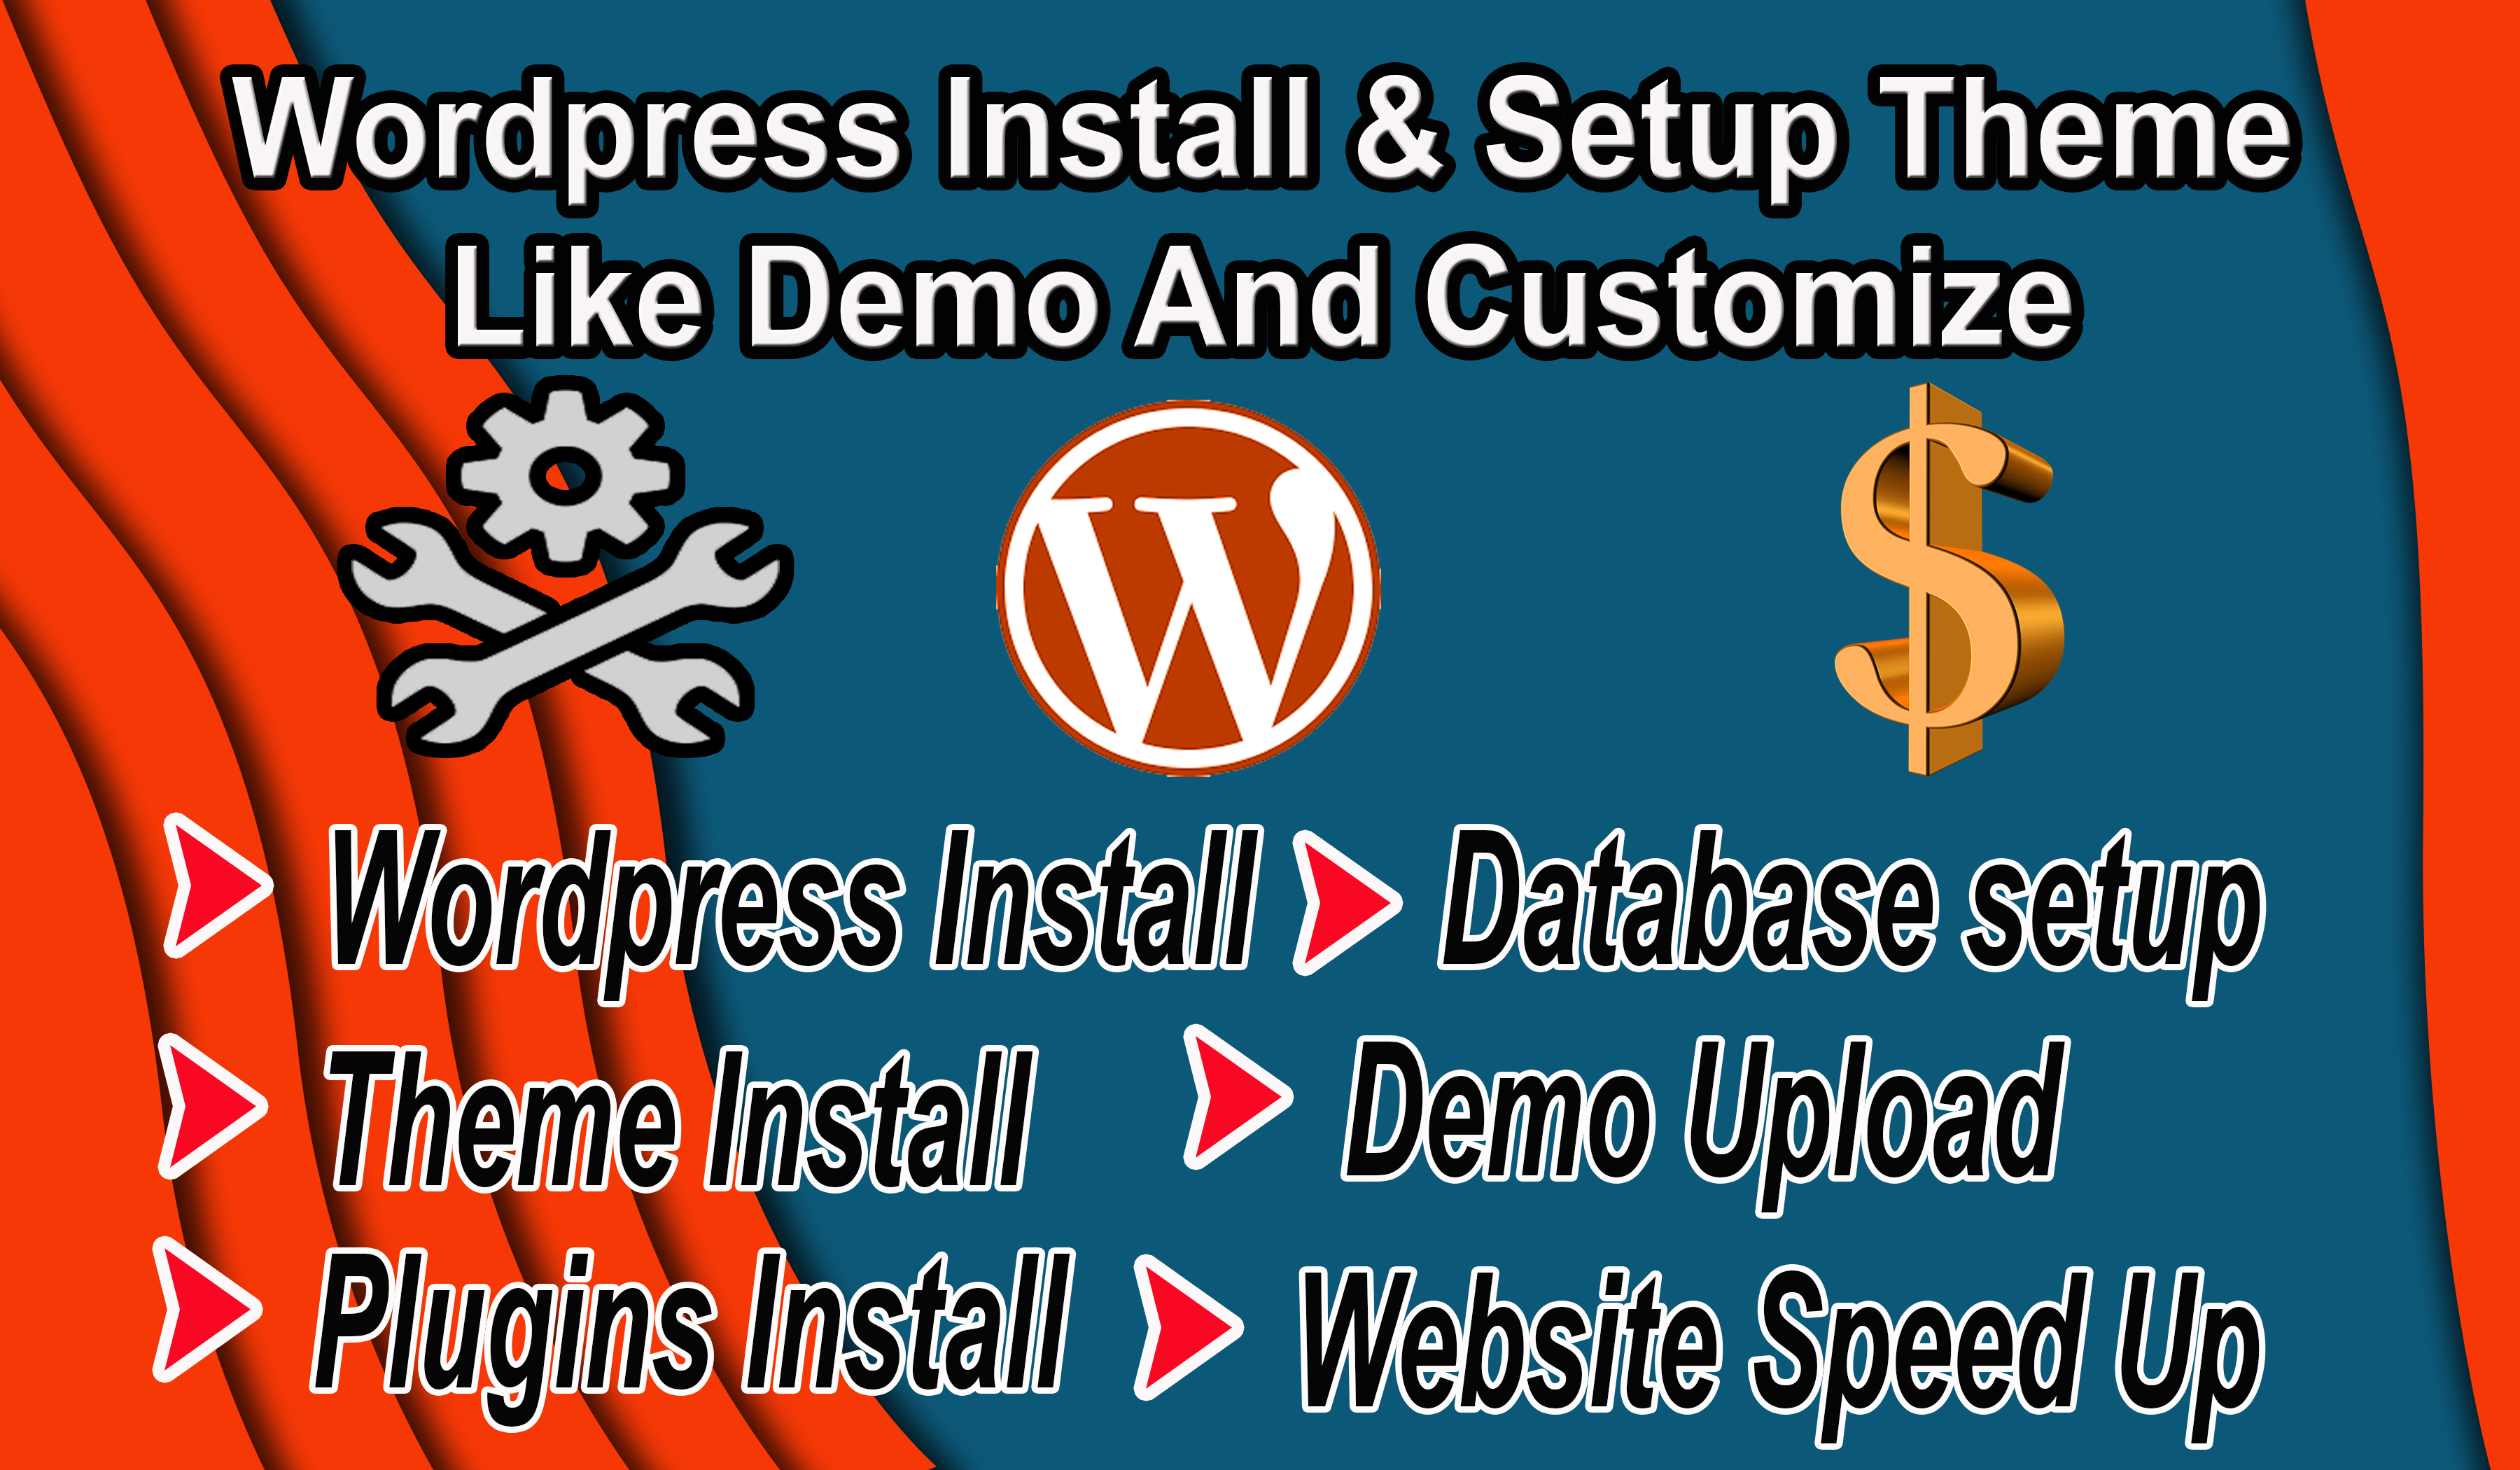 I will install WordPress,  theme setup,  demo Upload,  Speed Up And Do customization